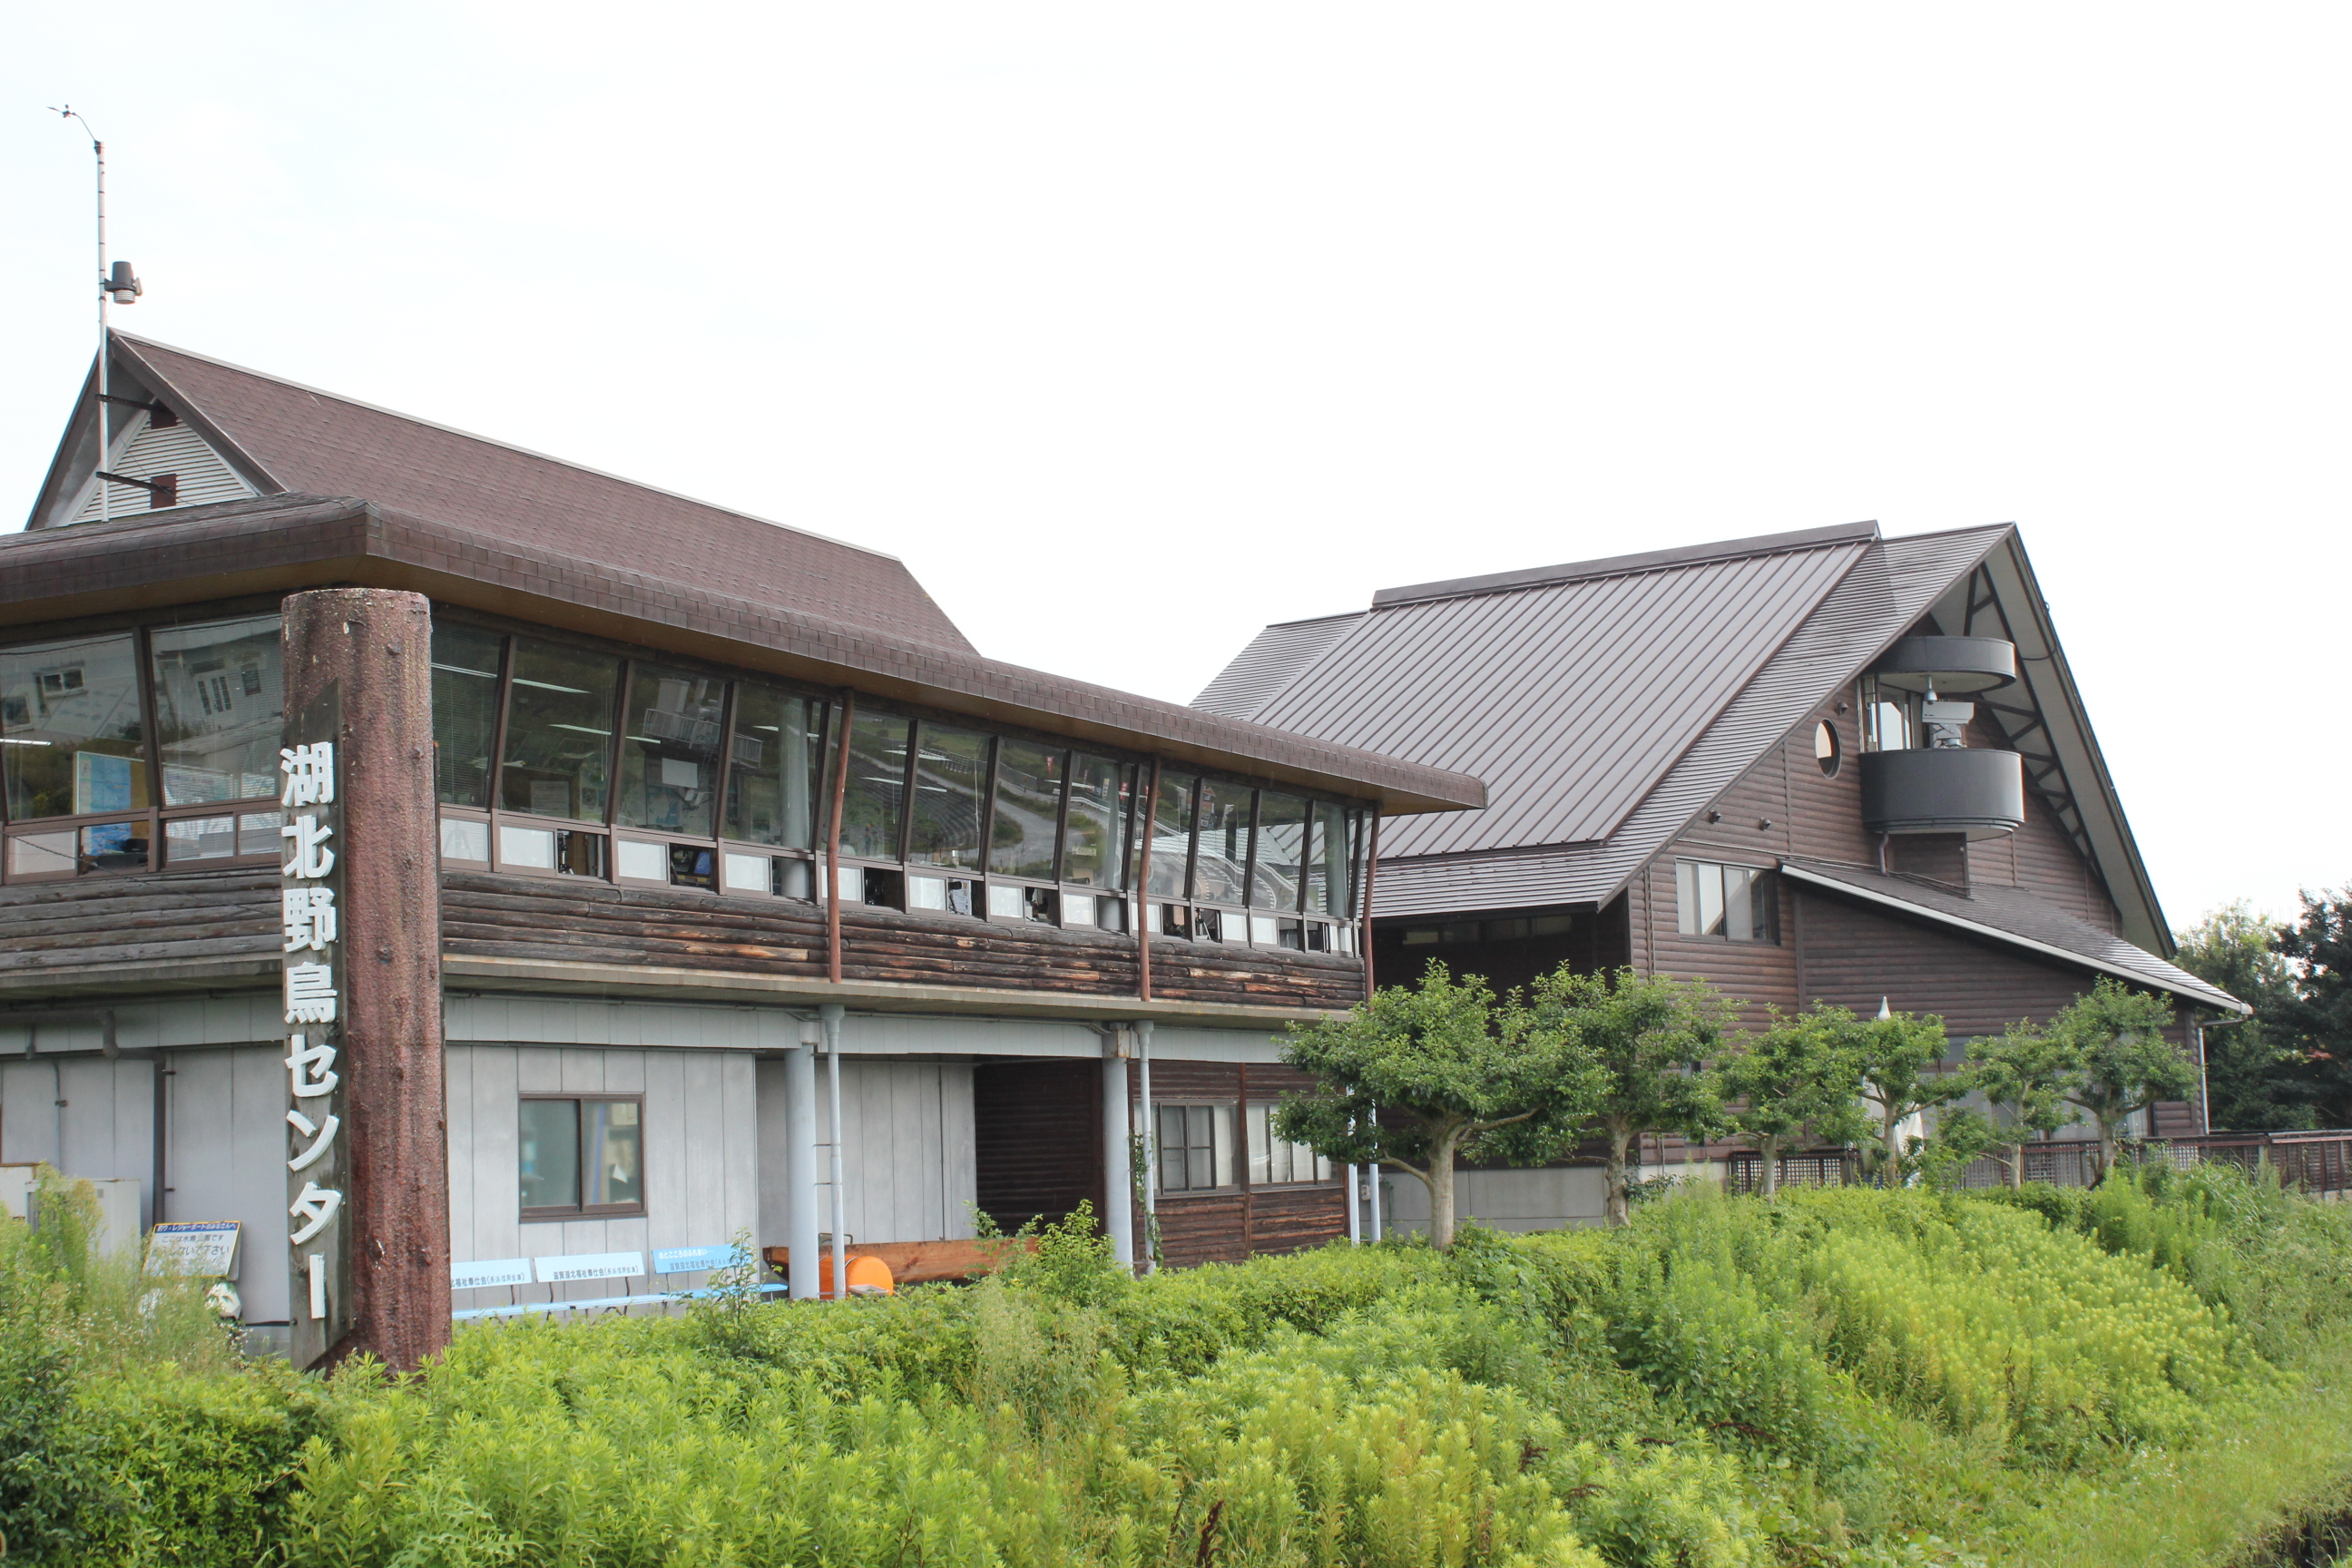 Kohoku Wild-Bird Center / Biwako Waterfowl & Wetland Center